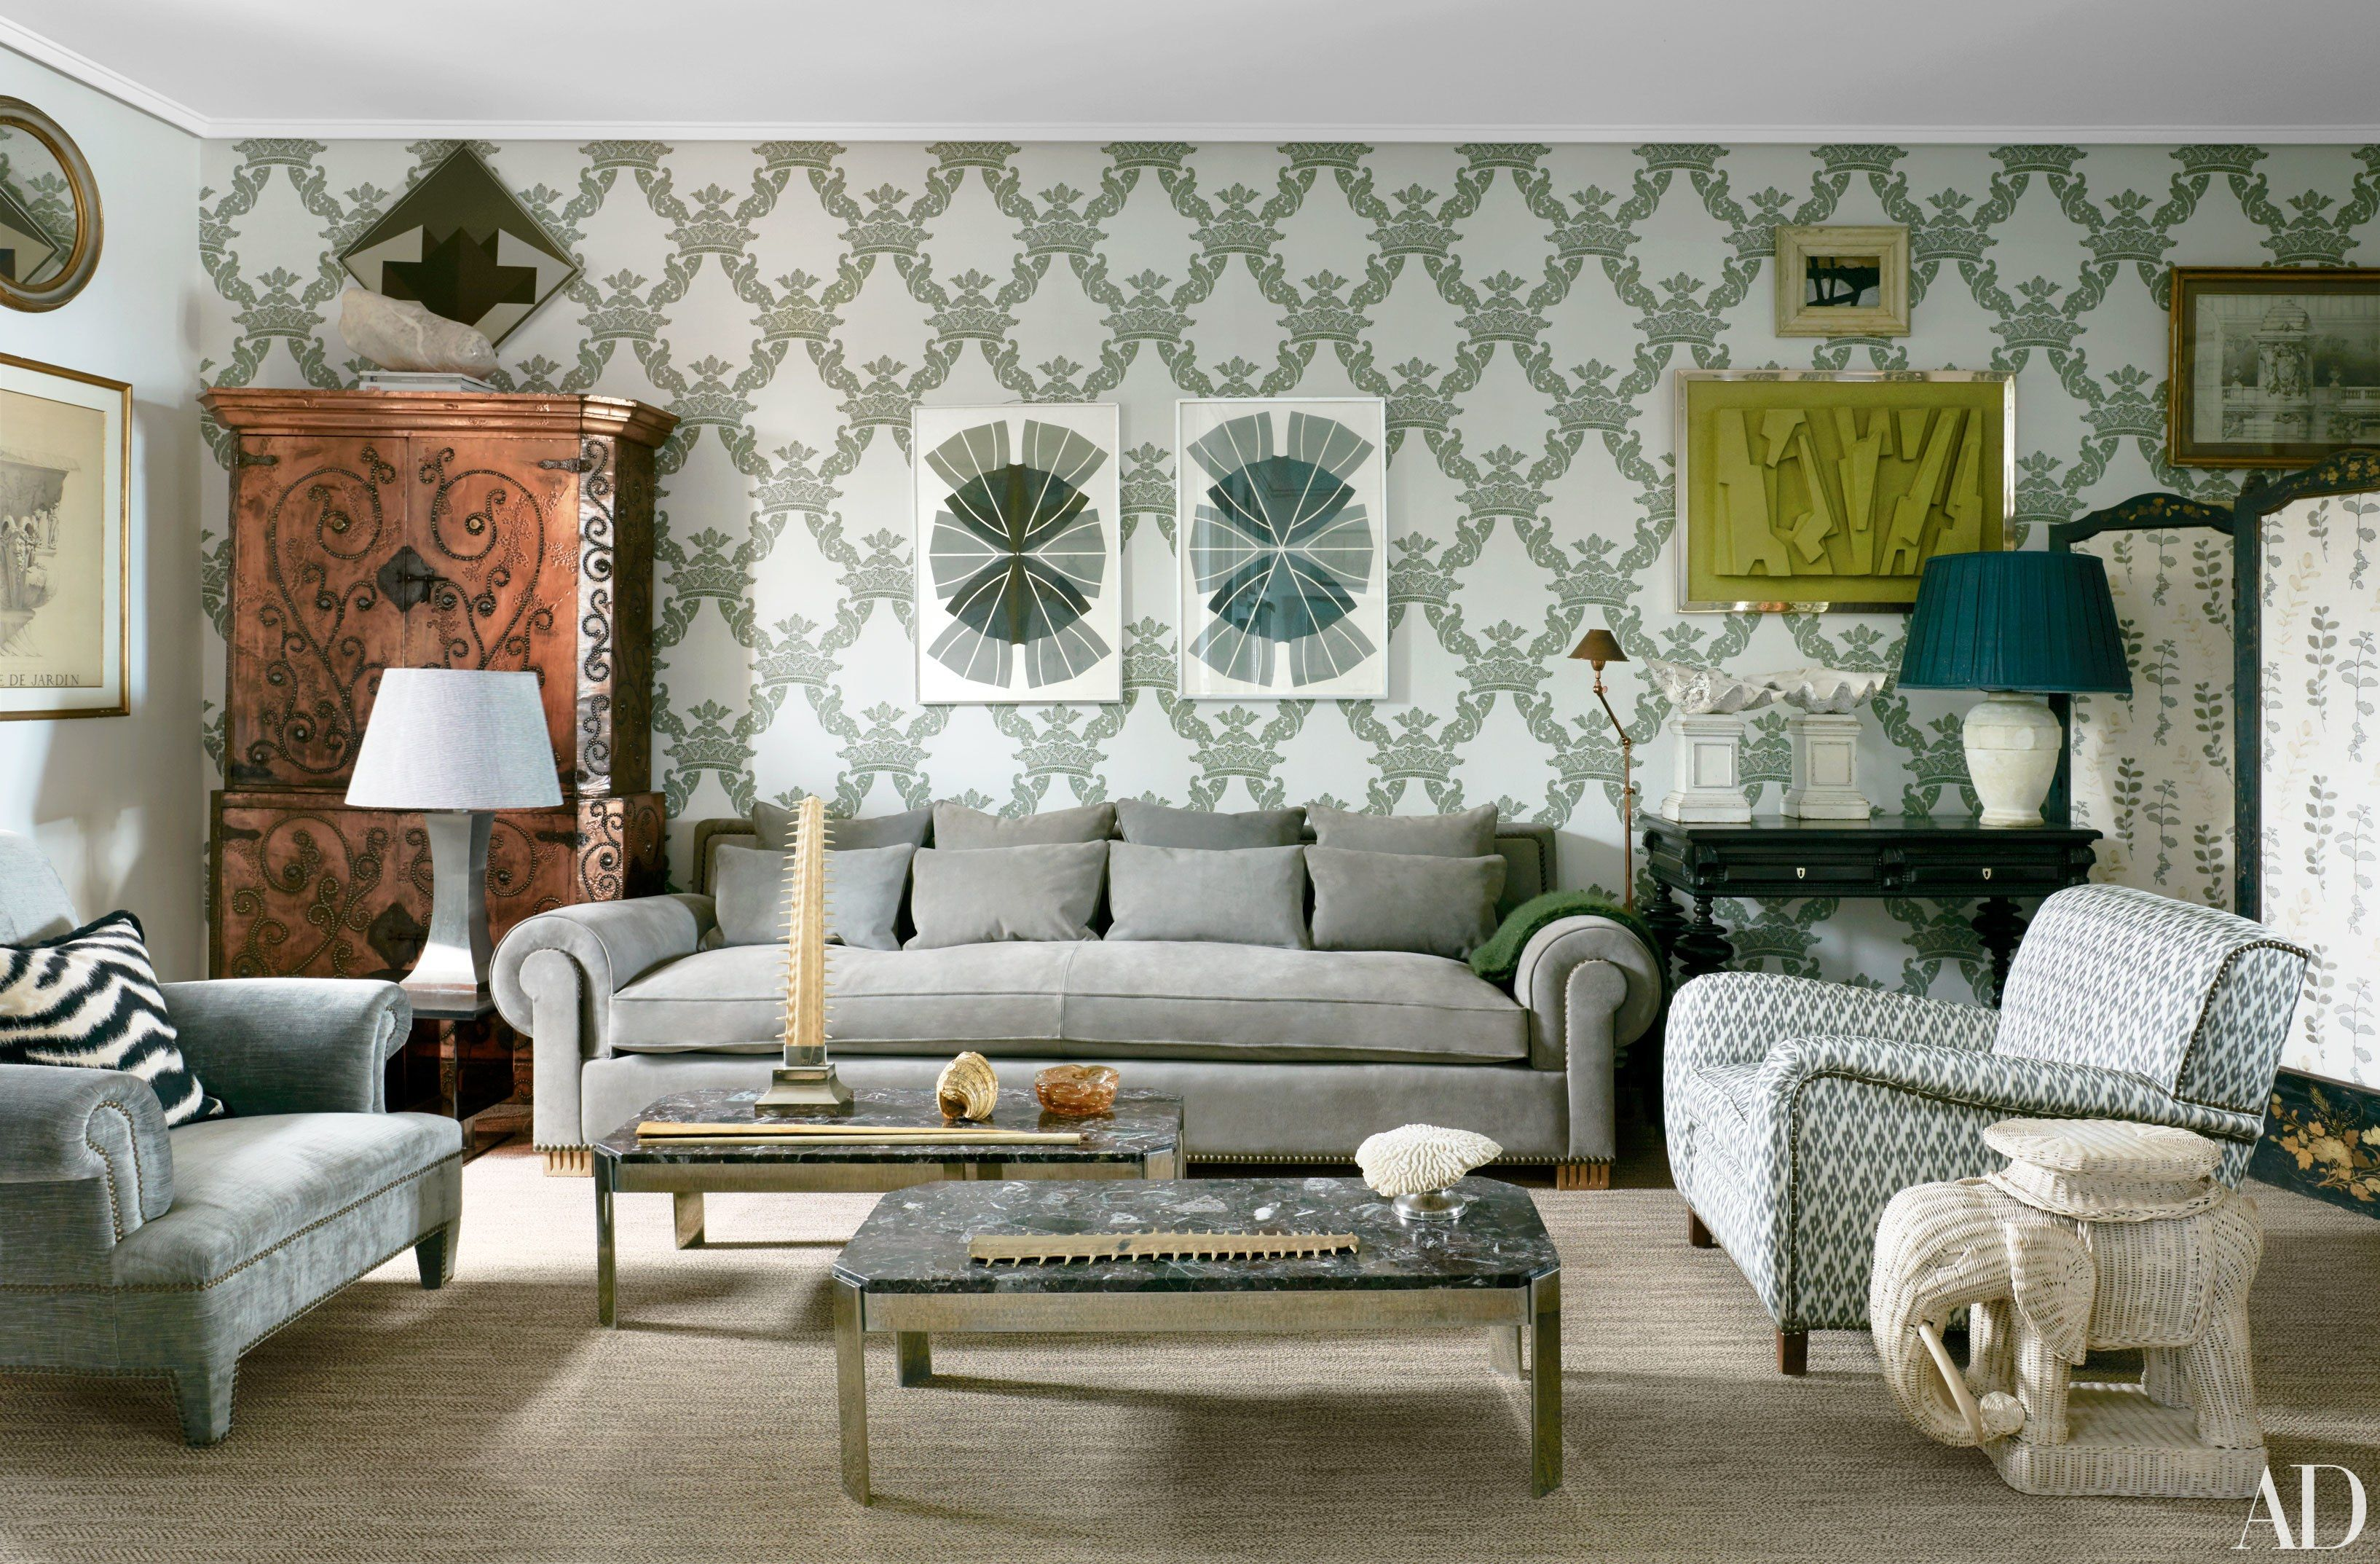 Tour The Northern Spain Getaway Of Decorator Lorenzo Castillo Upholstery Fabric For Chairs Living Room Sofa Green Rooms